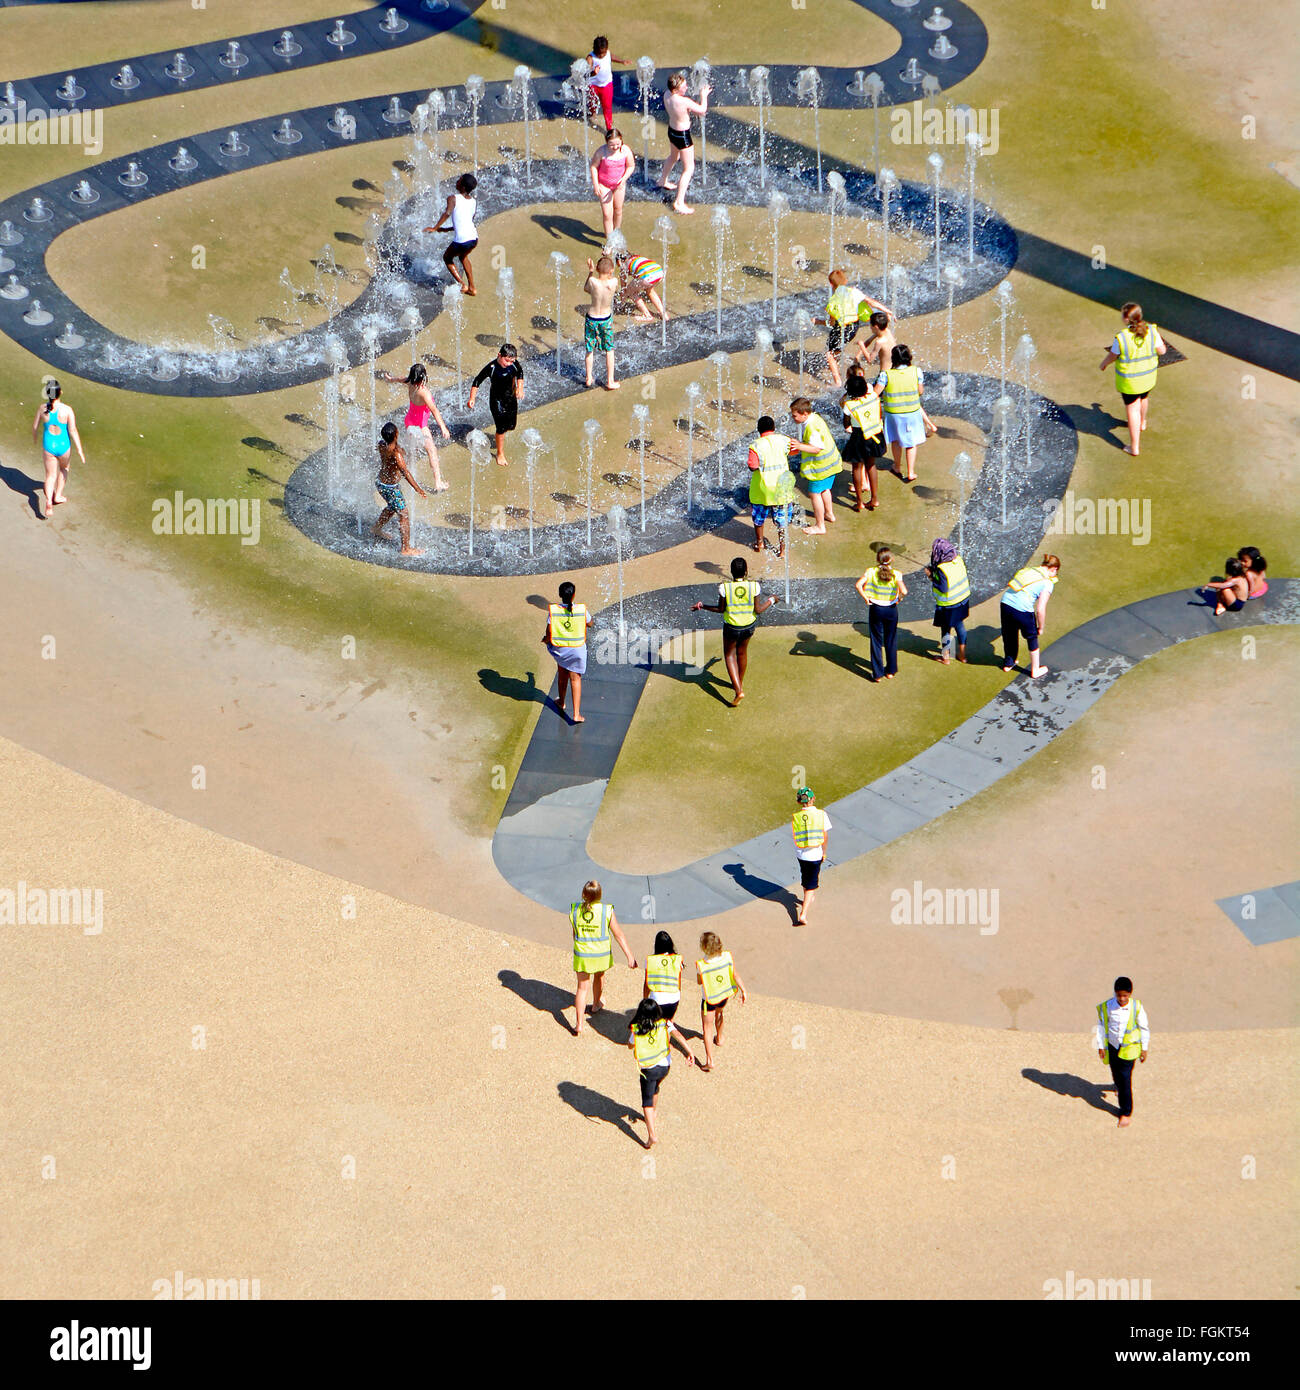 Kids playing outdoors in water fountain jets on school trip on hot summer day in Queen Elizabeth Olympic Park London - Stock Image